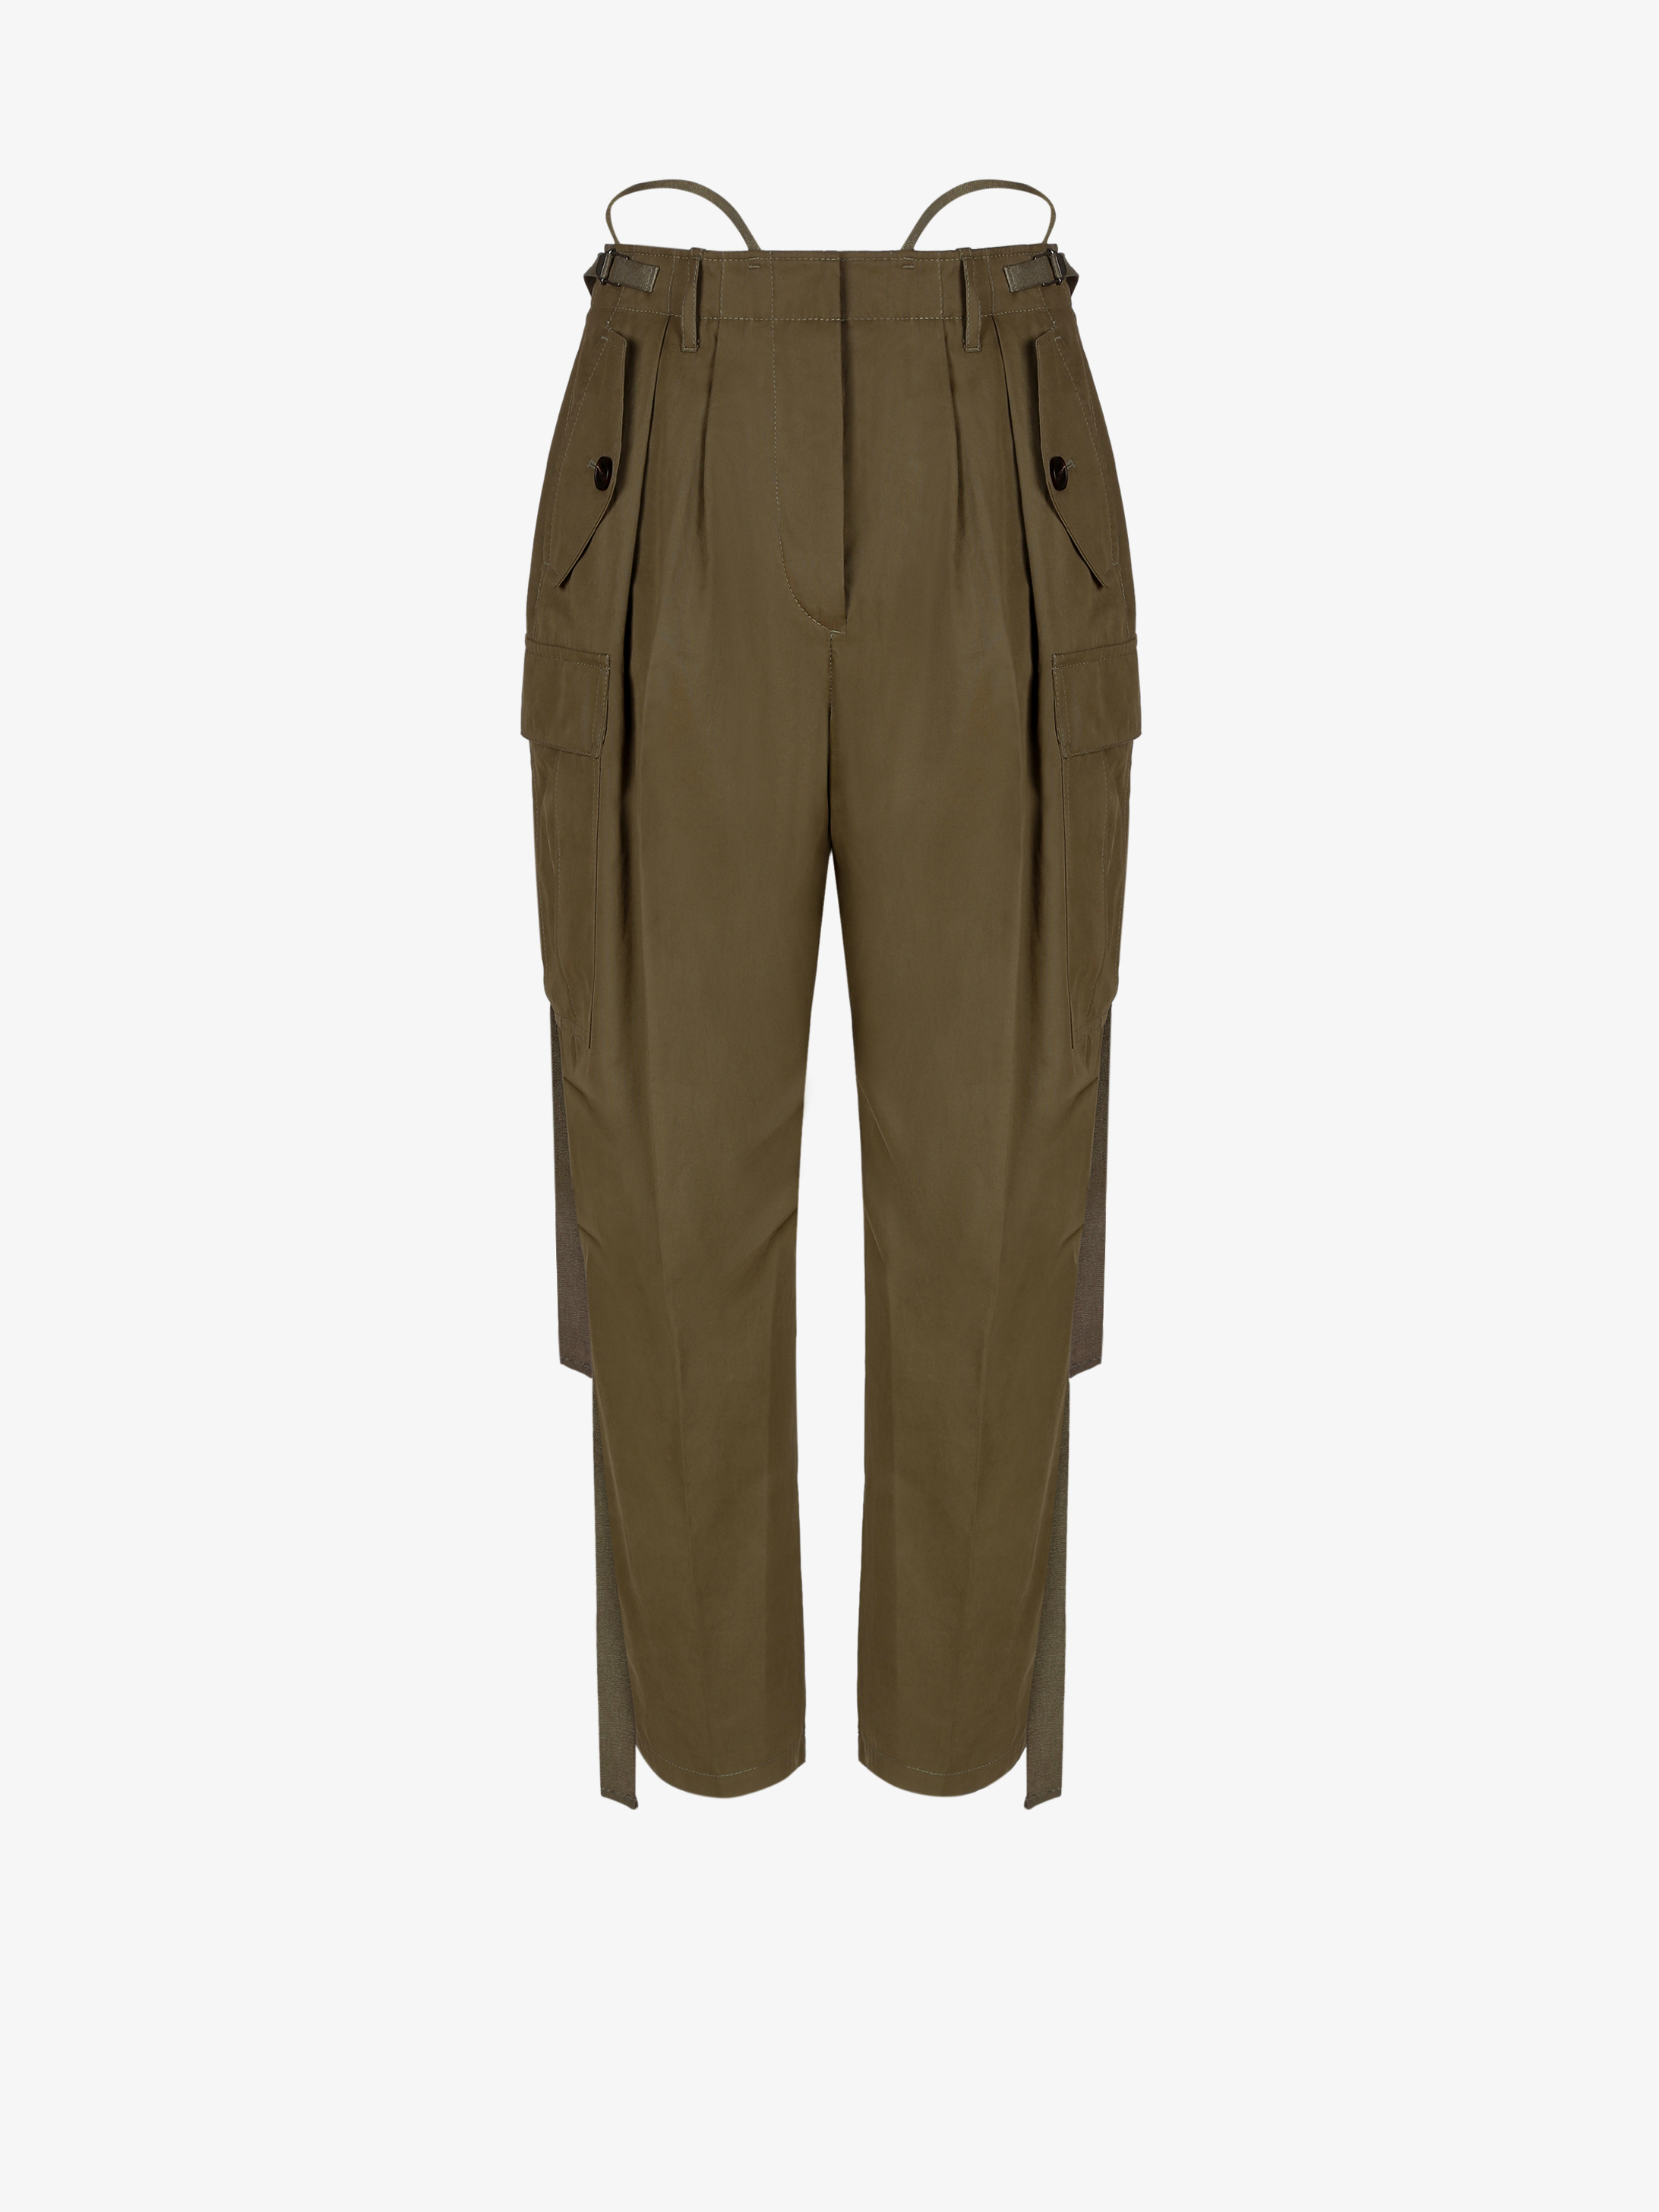 Multipockets military trousers with hanging ribbons